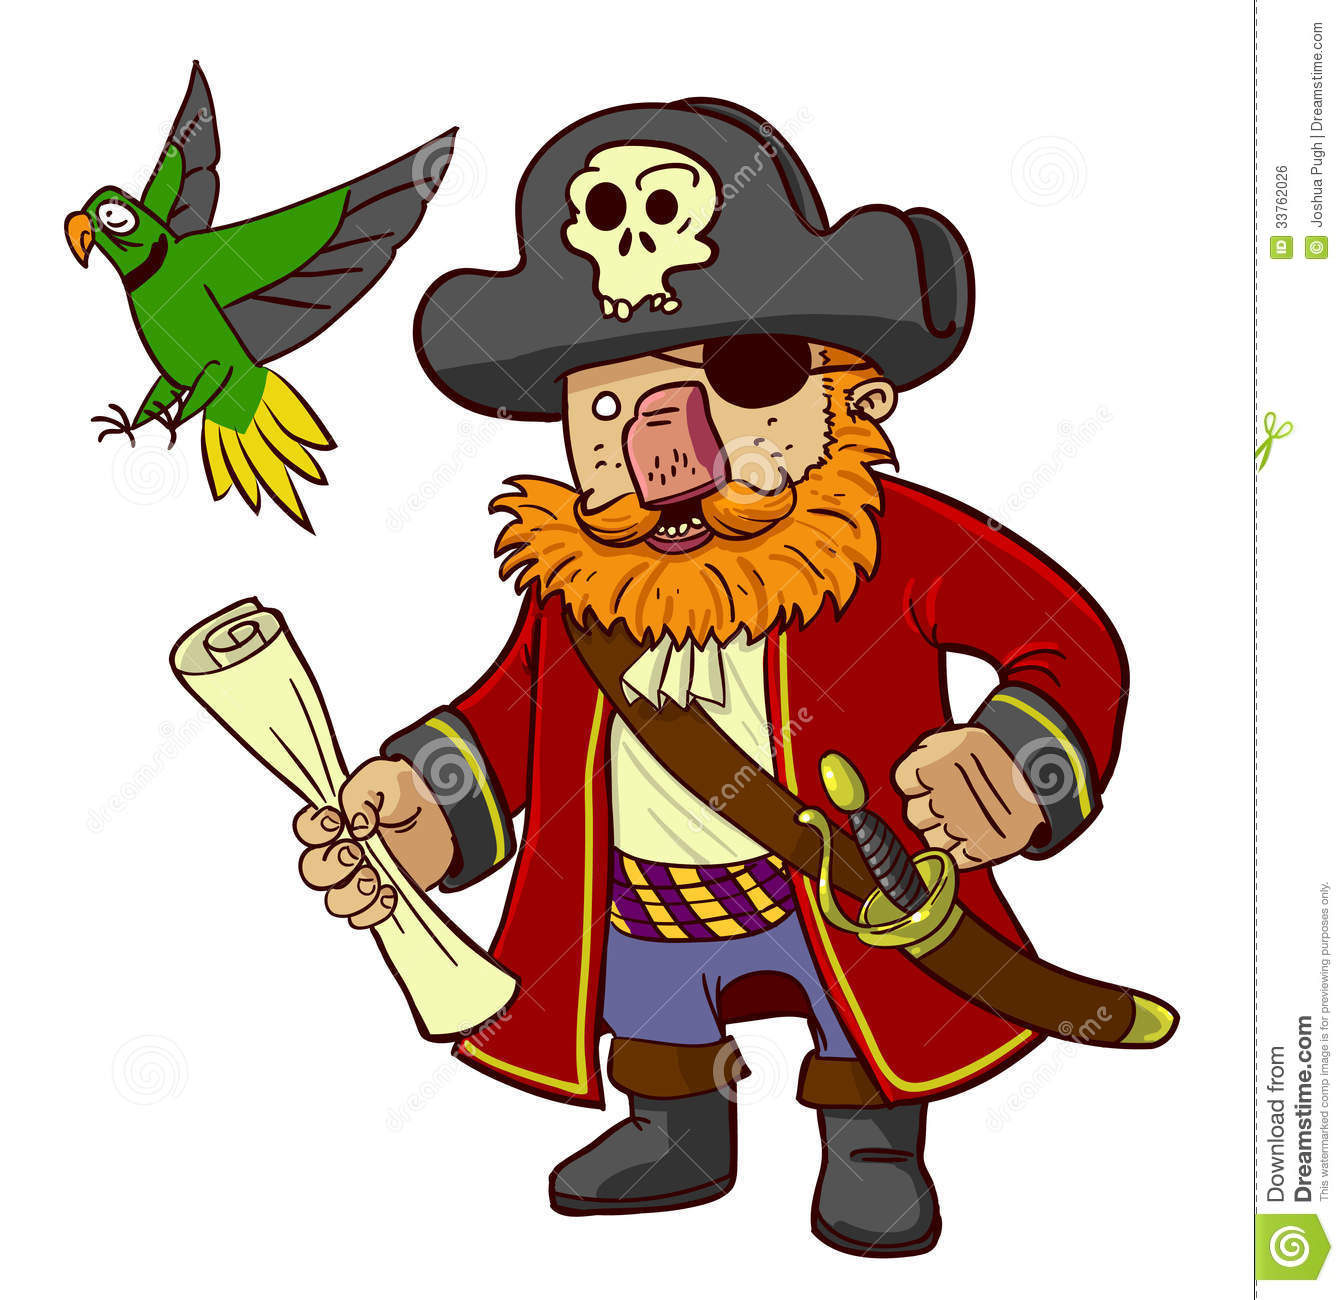 Pirate Captain And Parrot Royalty Free Stock Image - Image: 33762026